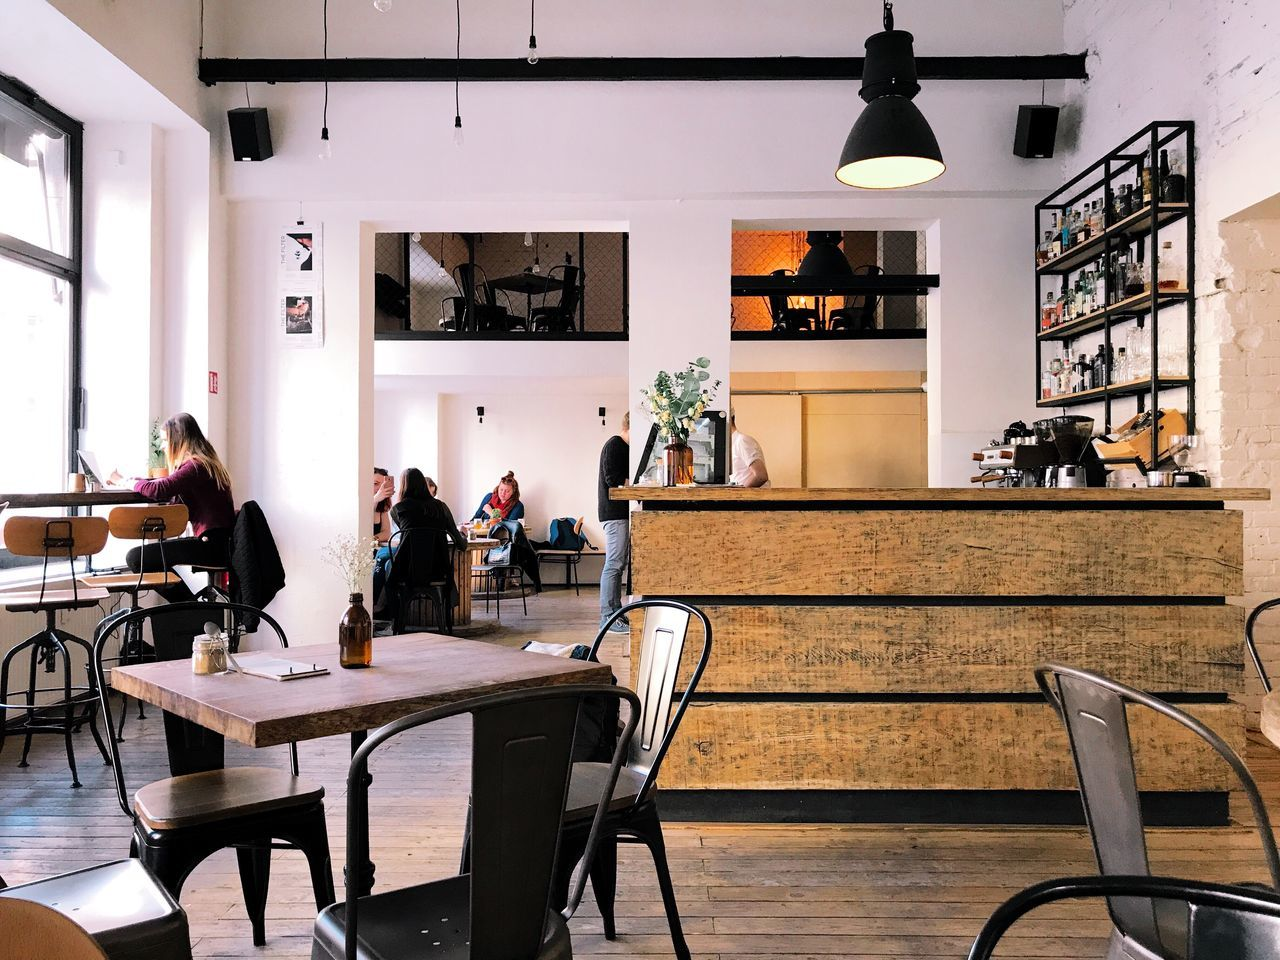 chair, table, real people, indoors, restaurant, cafe, sitting, lifestyles, women, leisure activity, men, architecture, day, people